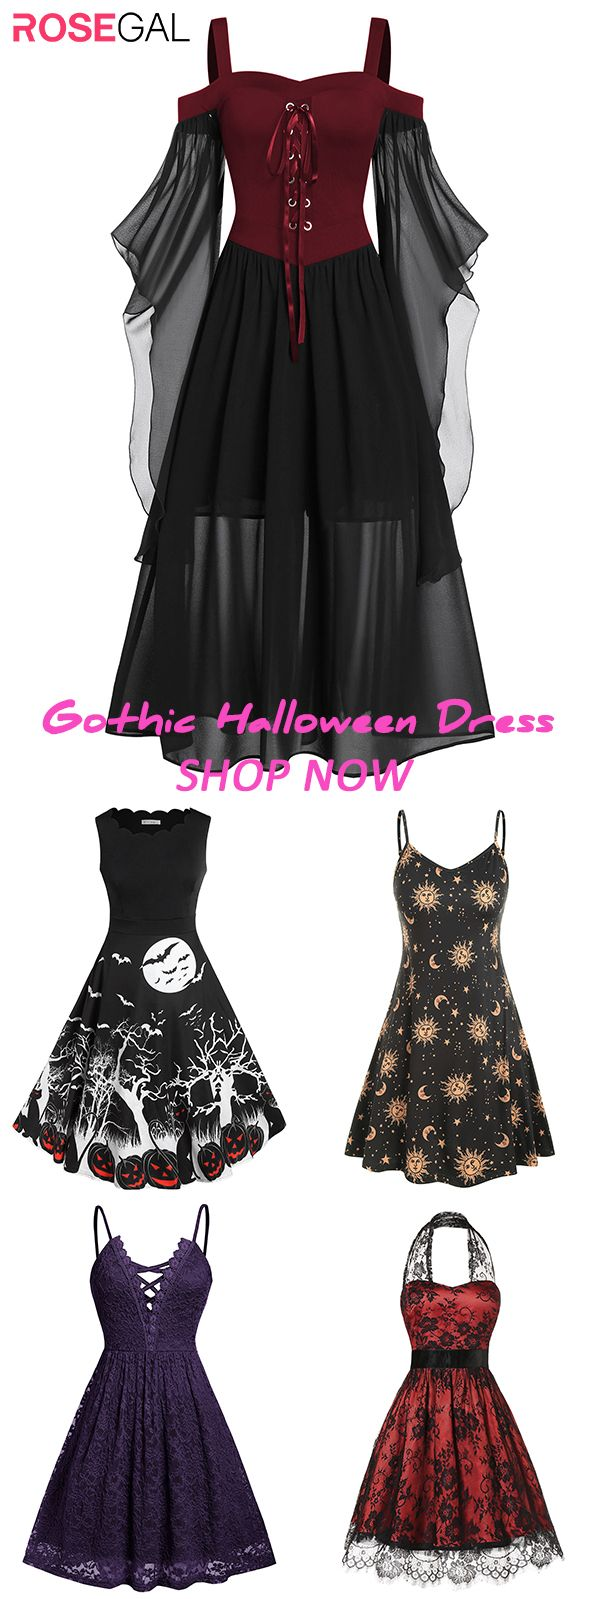 Rosegal plus size Lace Up Gothic Halloween Dress Gothic dress ideas